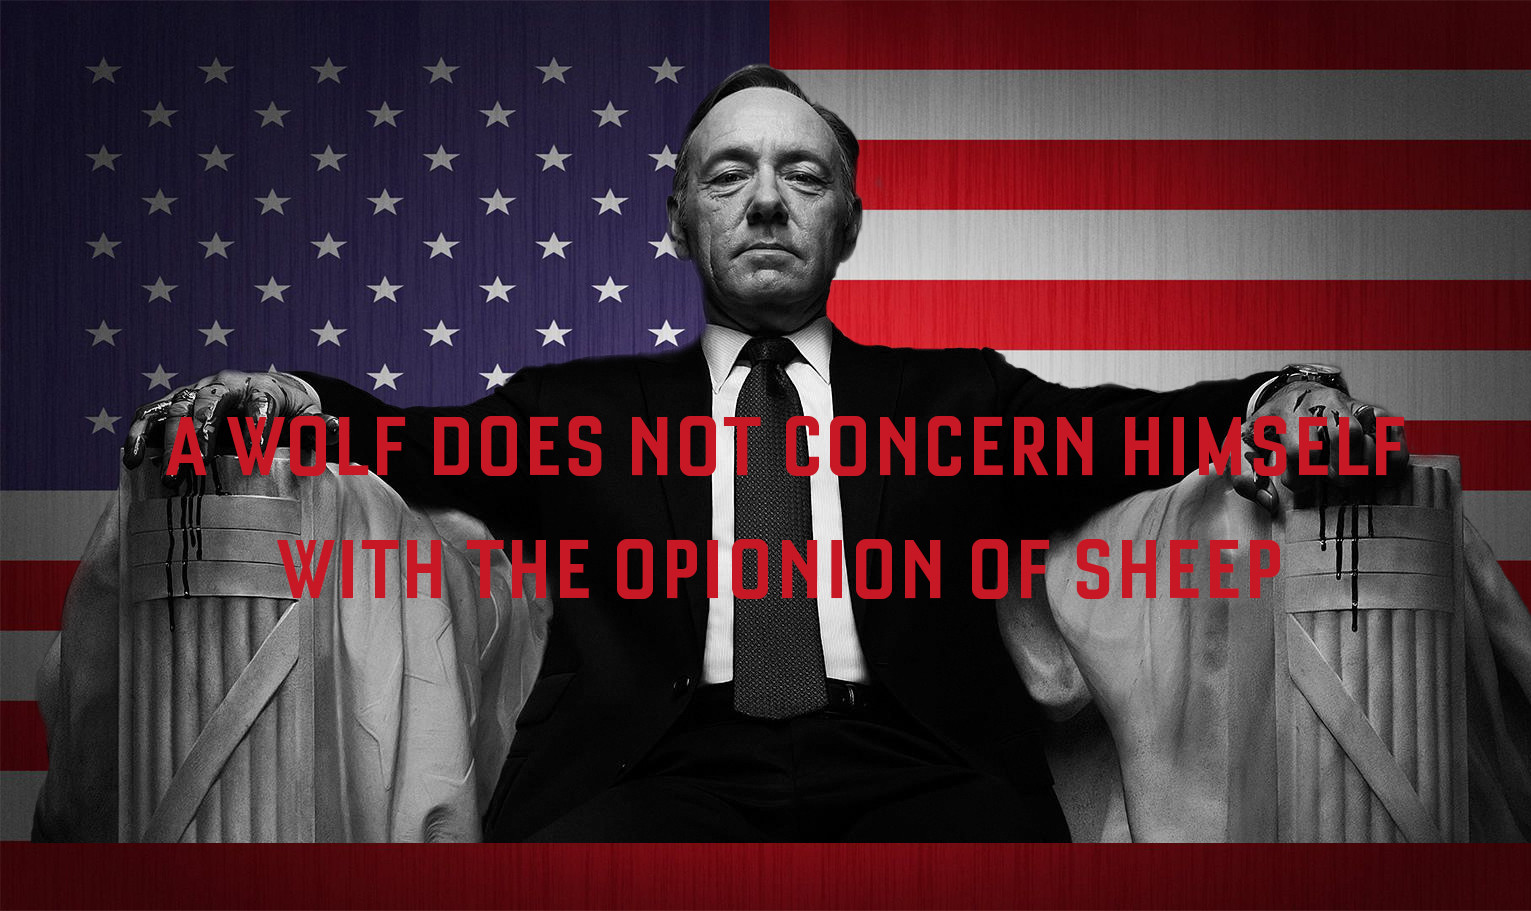 Free Download House Of Cards Wallpaper No Spoilerhouse Of Cards